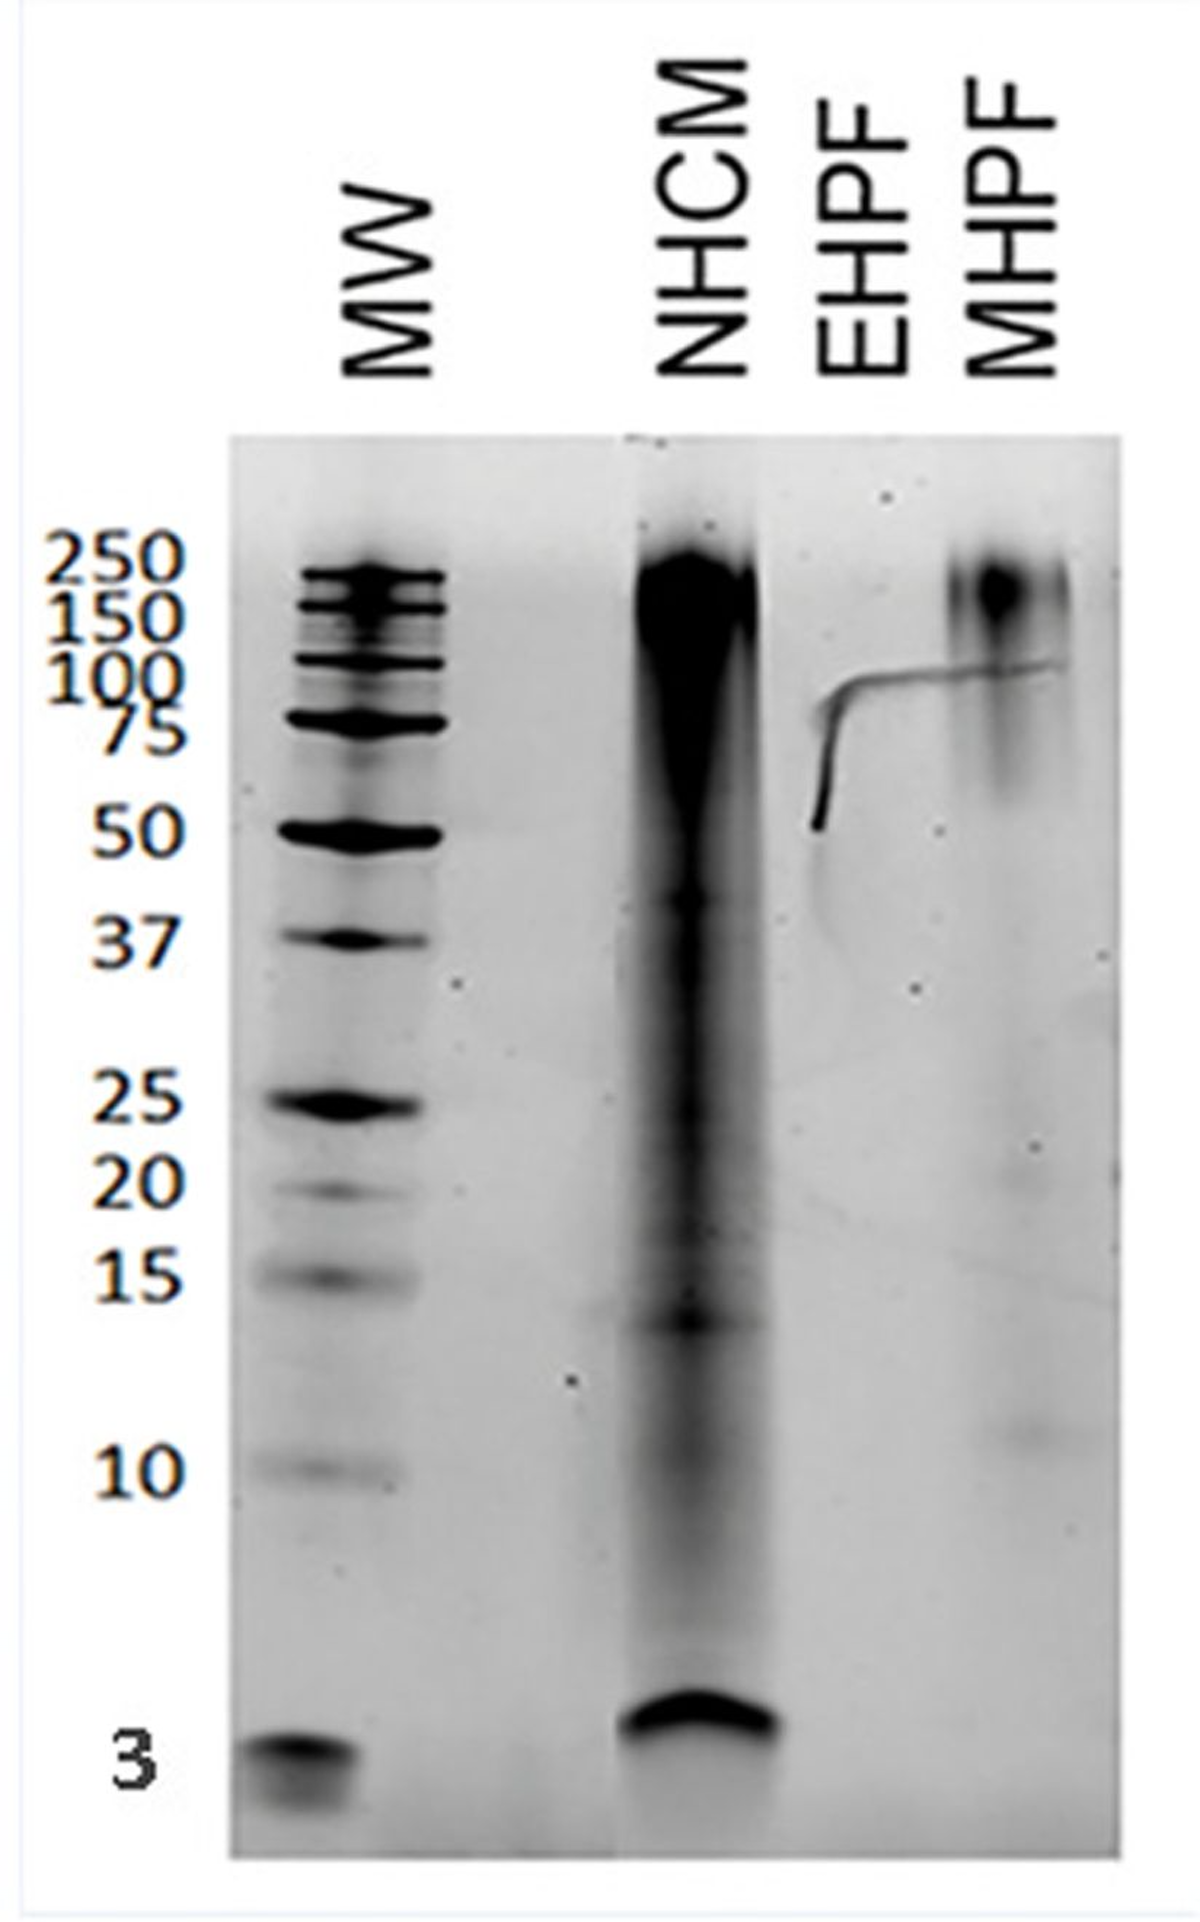 Figure 1. Protein electrophoresis on three different poultry-based raw materials, including the extensively hydrolyzed feather protein of Anallergenic diets.  Key:   • NHCM (non-hydrolyzed chicken meal): many proteins of varying molecular weight can be seen • EHPF (Anallergenic extensively hydrolyzed poultry feather): no band seen • MHPF (mildly hydrolyzed poultry feather): residual large proteins are seen • MW: molecular weight in kilodaltons (kDa)  Note: Free amino acids are not visualized by this technique. The artefact on the gel was a deposit before migration.